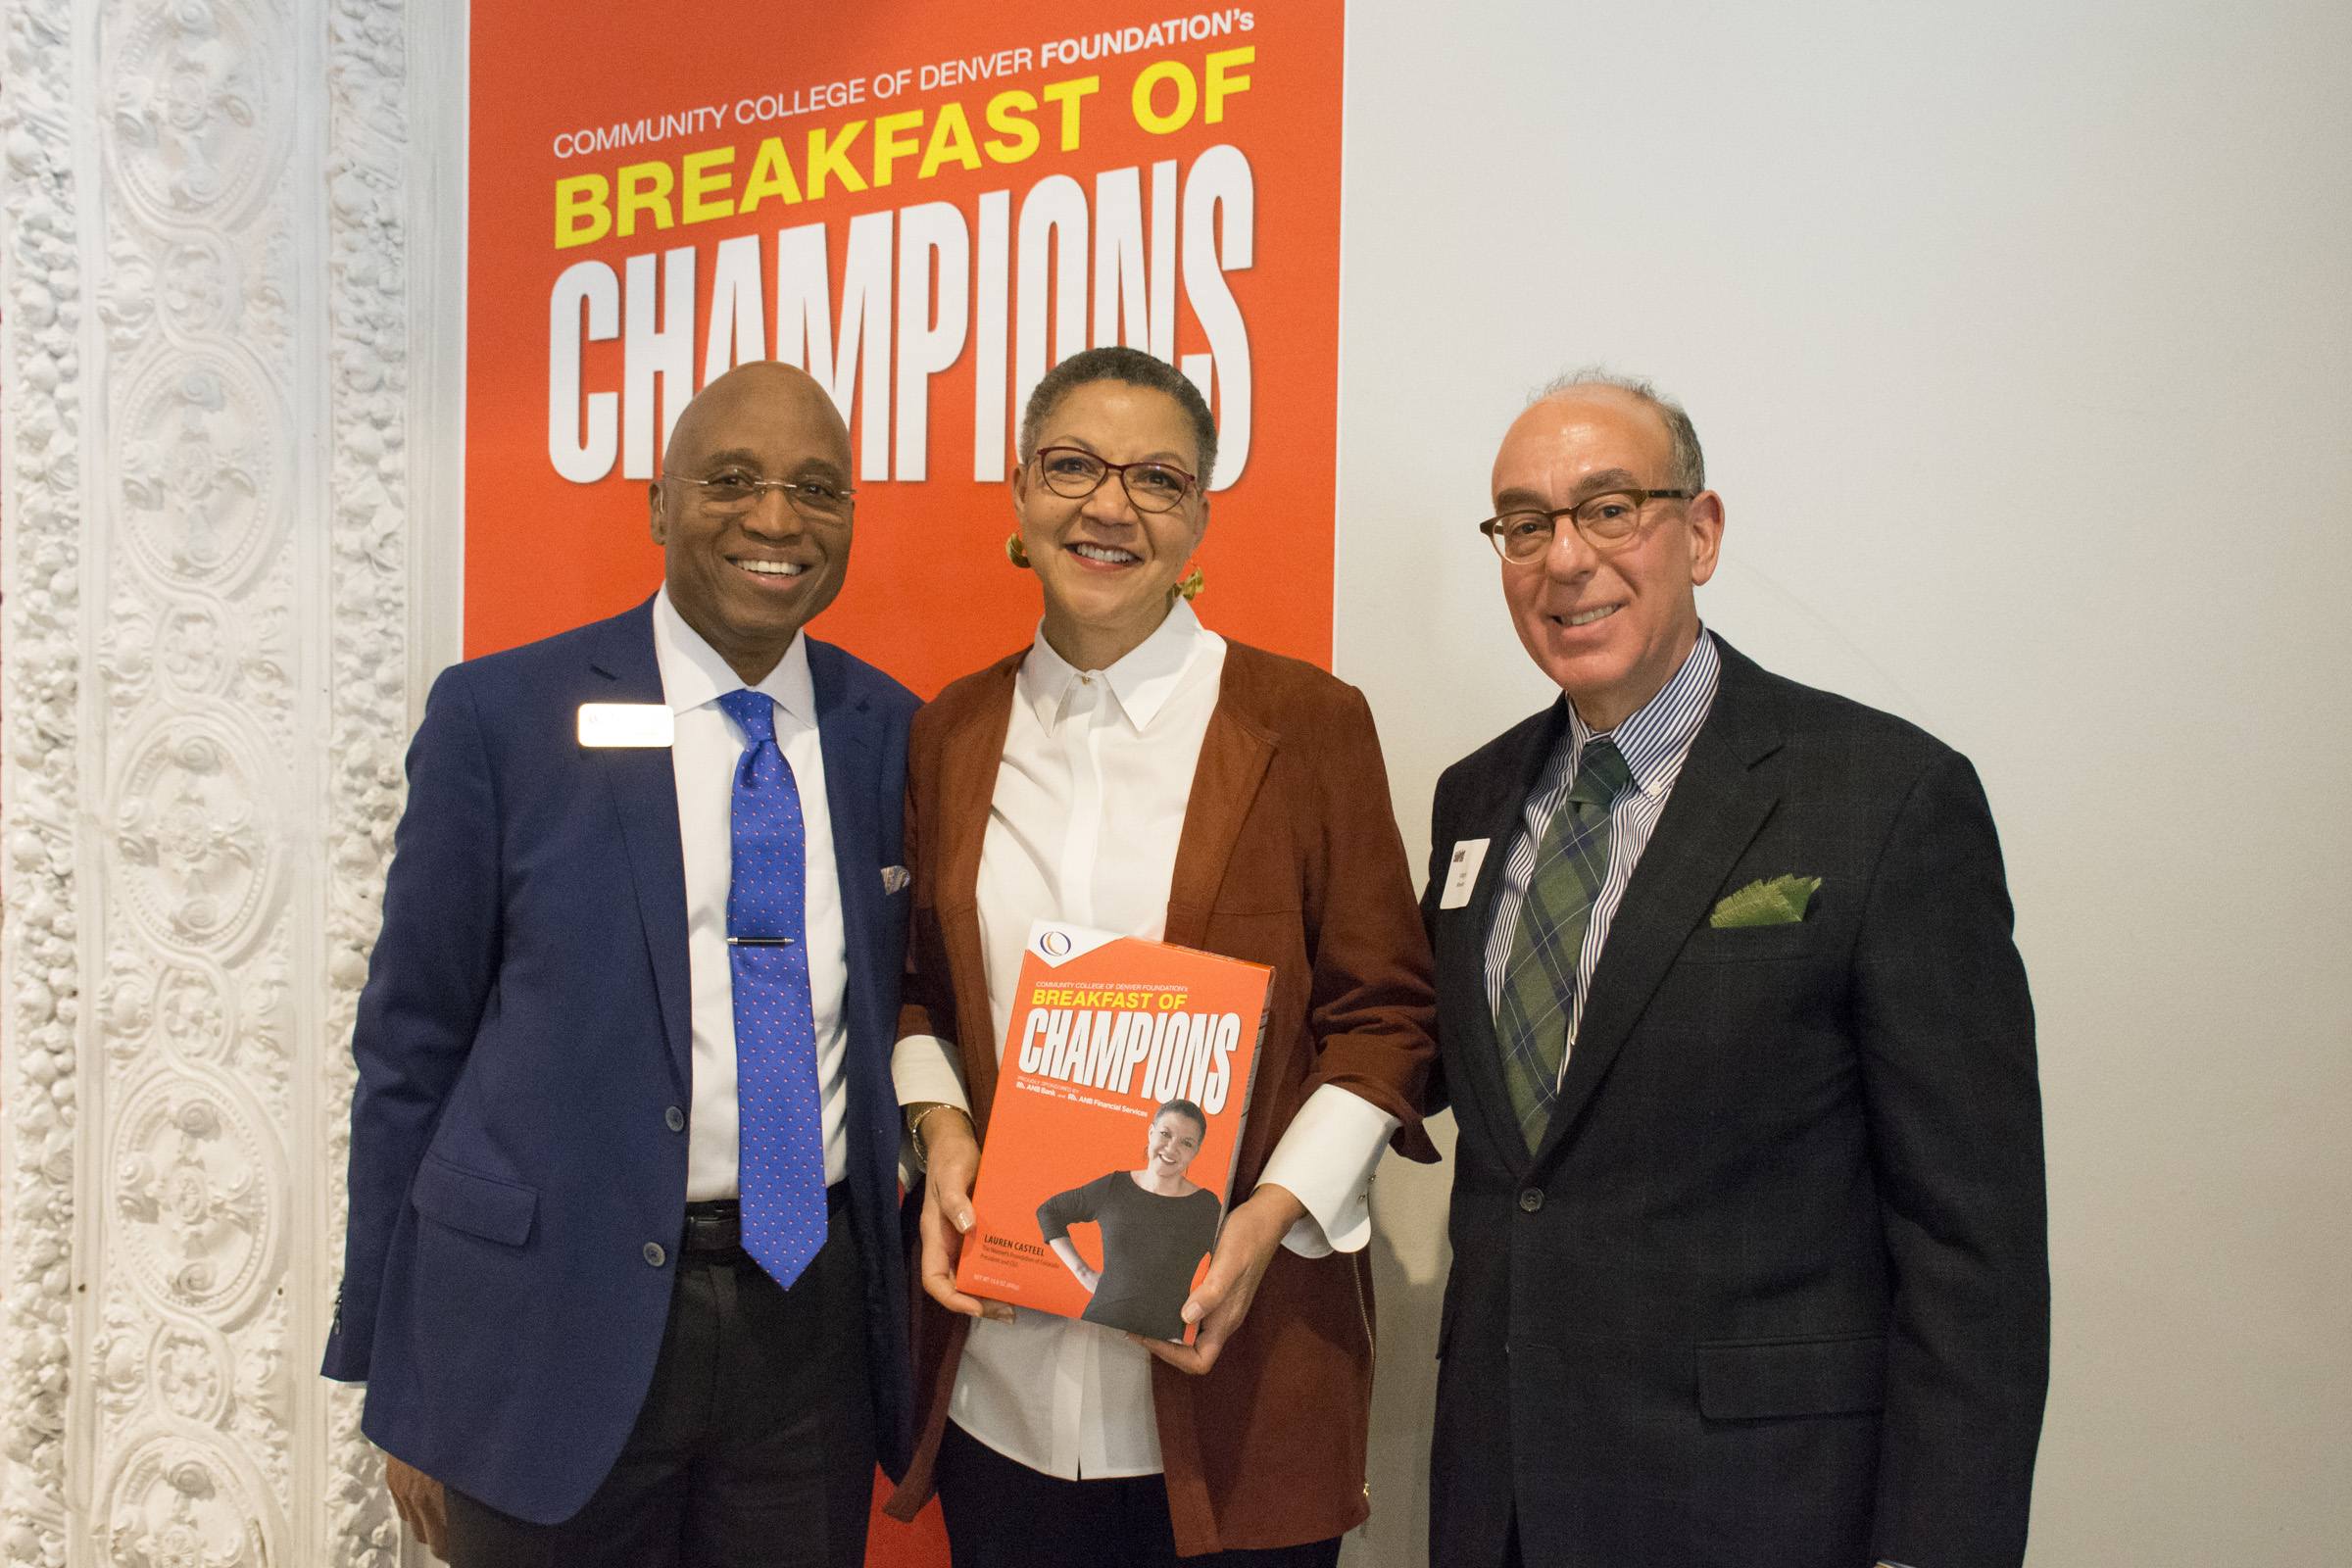 woman holding a Breakfast of Champions cereal box next to two men in suits